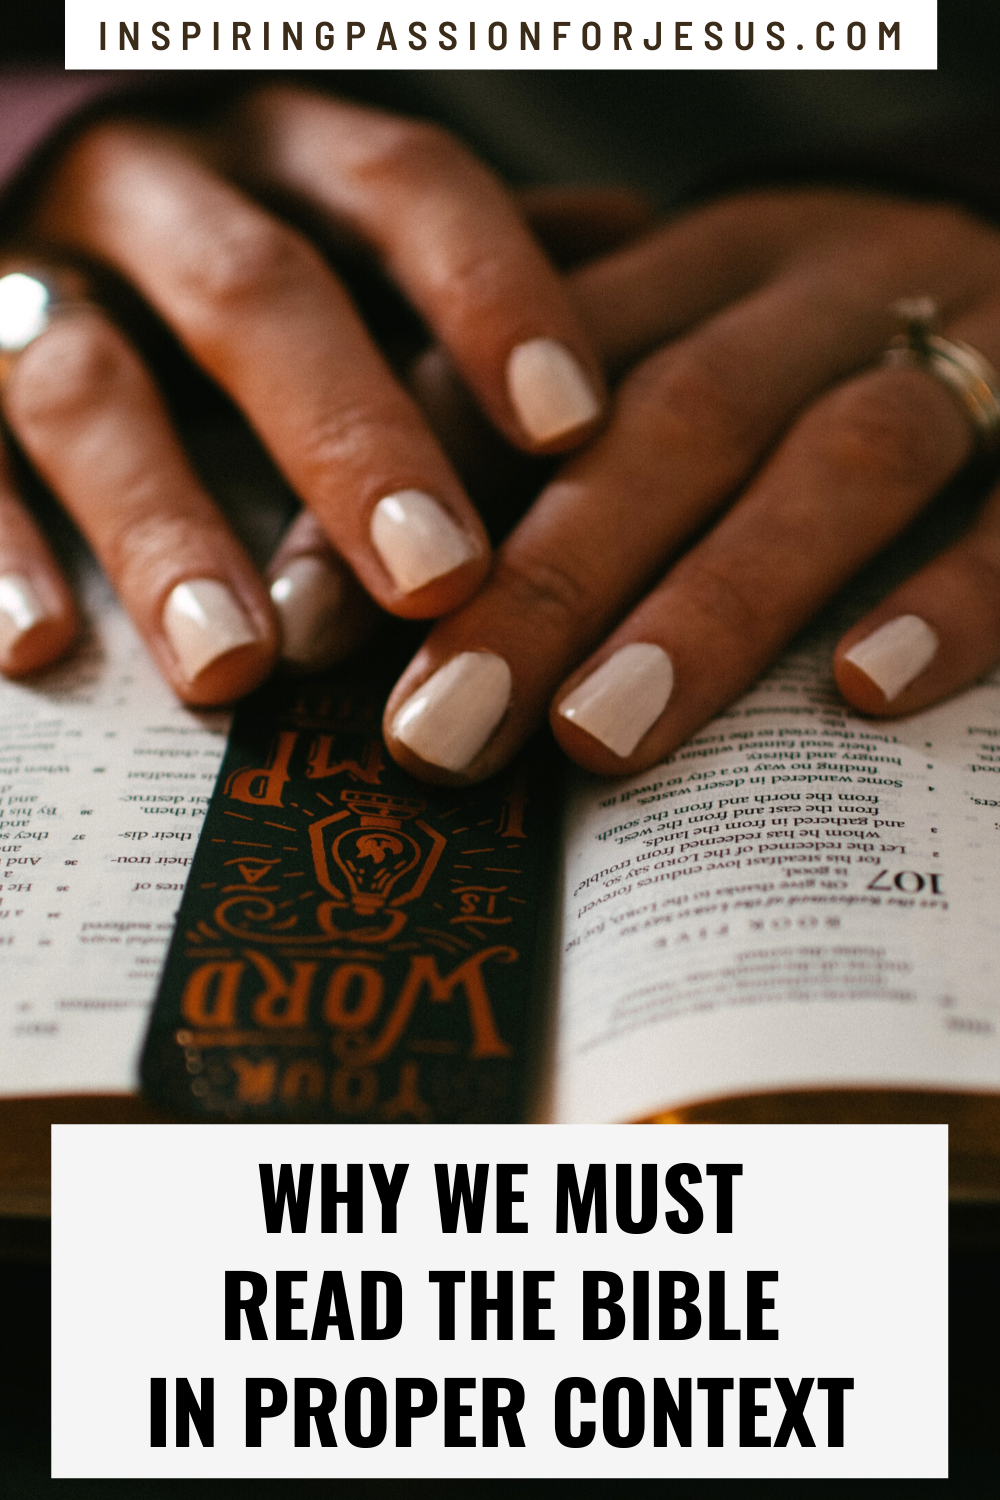 Why We Must Read the Bible in Proper Context